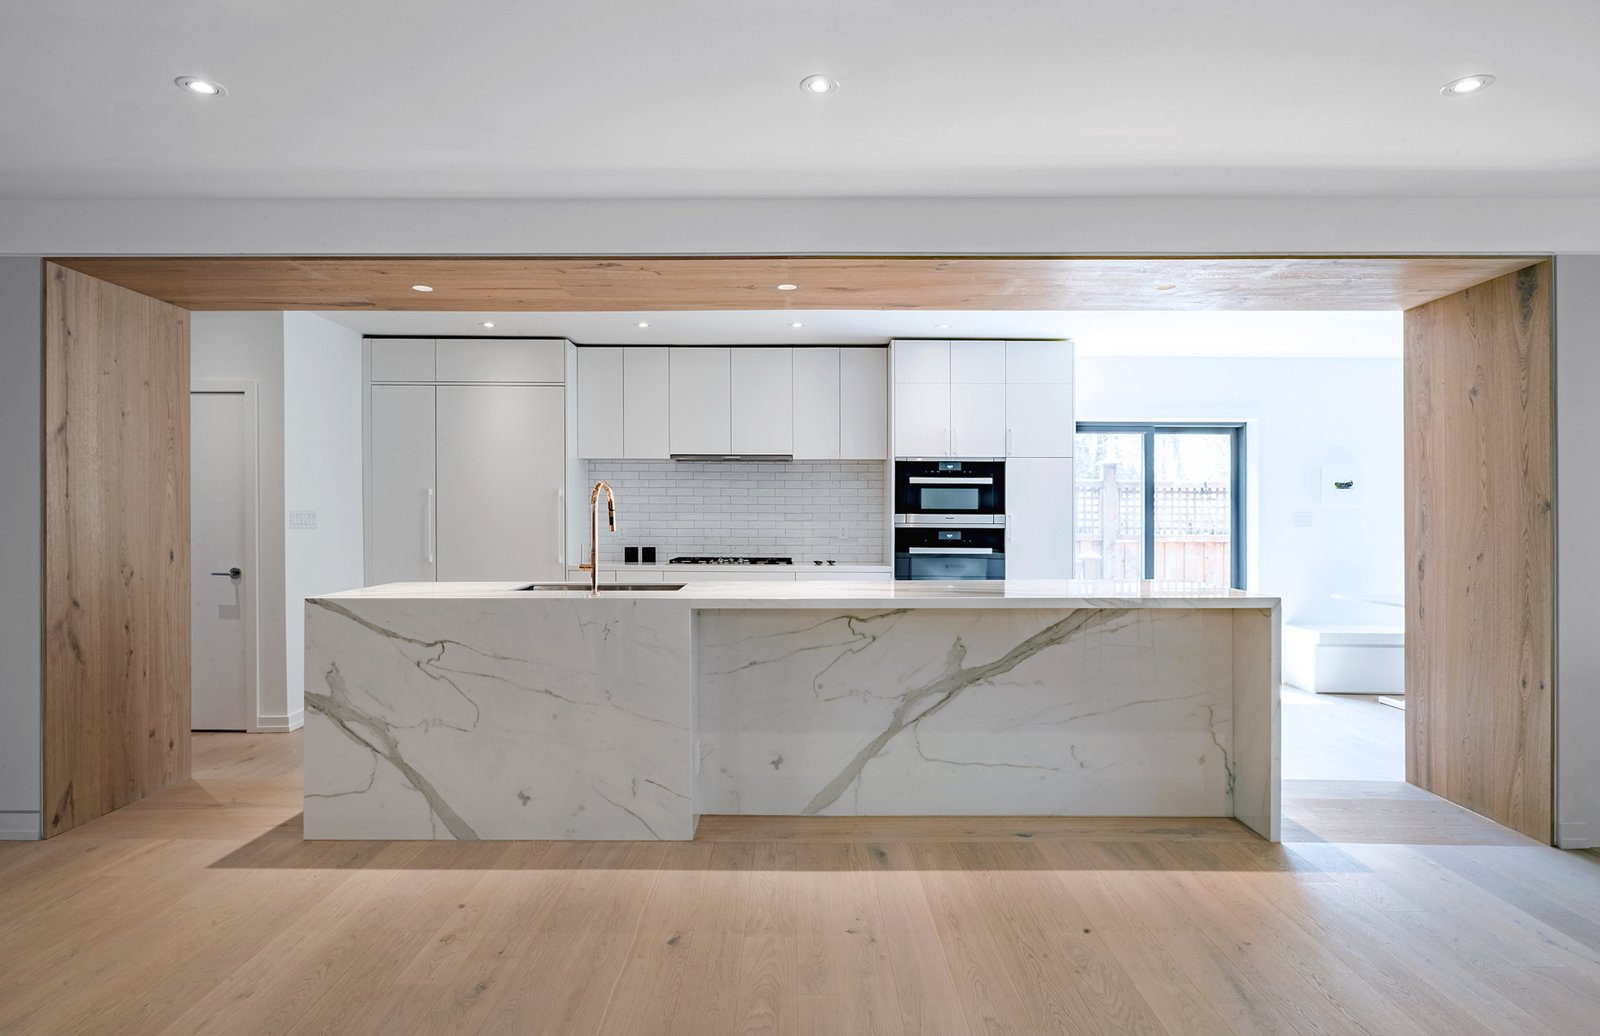 Tagged: Kitchen, White Cabinet, Subway Tile Backsplashe, Quartzite Counter, Light Hardwood Floor, Ceiling Lighting, Recessed Lighting, Refrigerator, Wall Oven, and Undermount Sink. Richview Residence by StudioAC